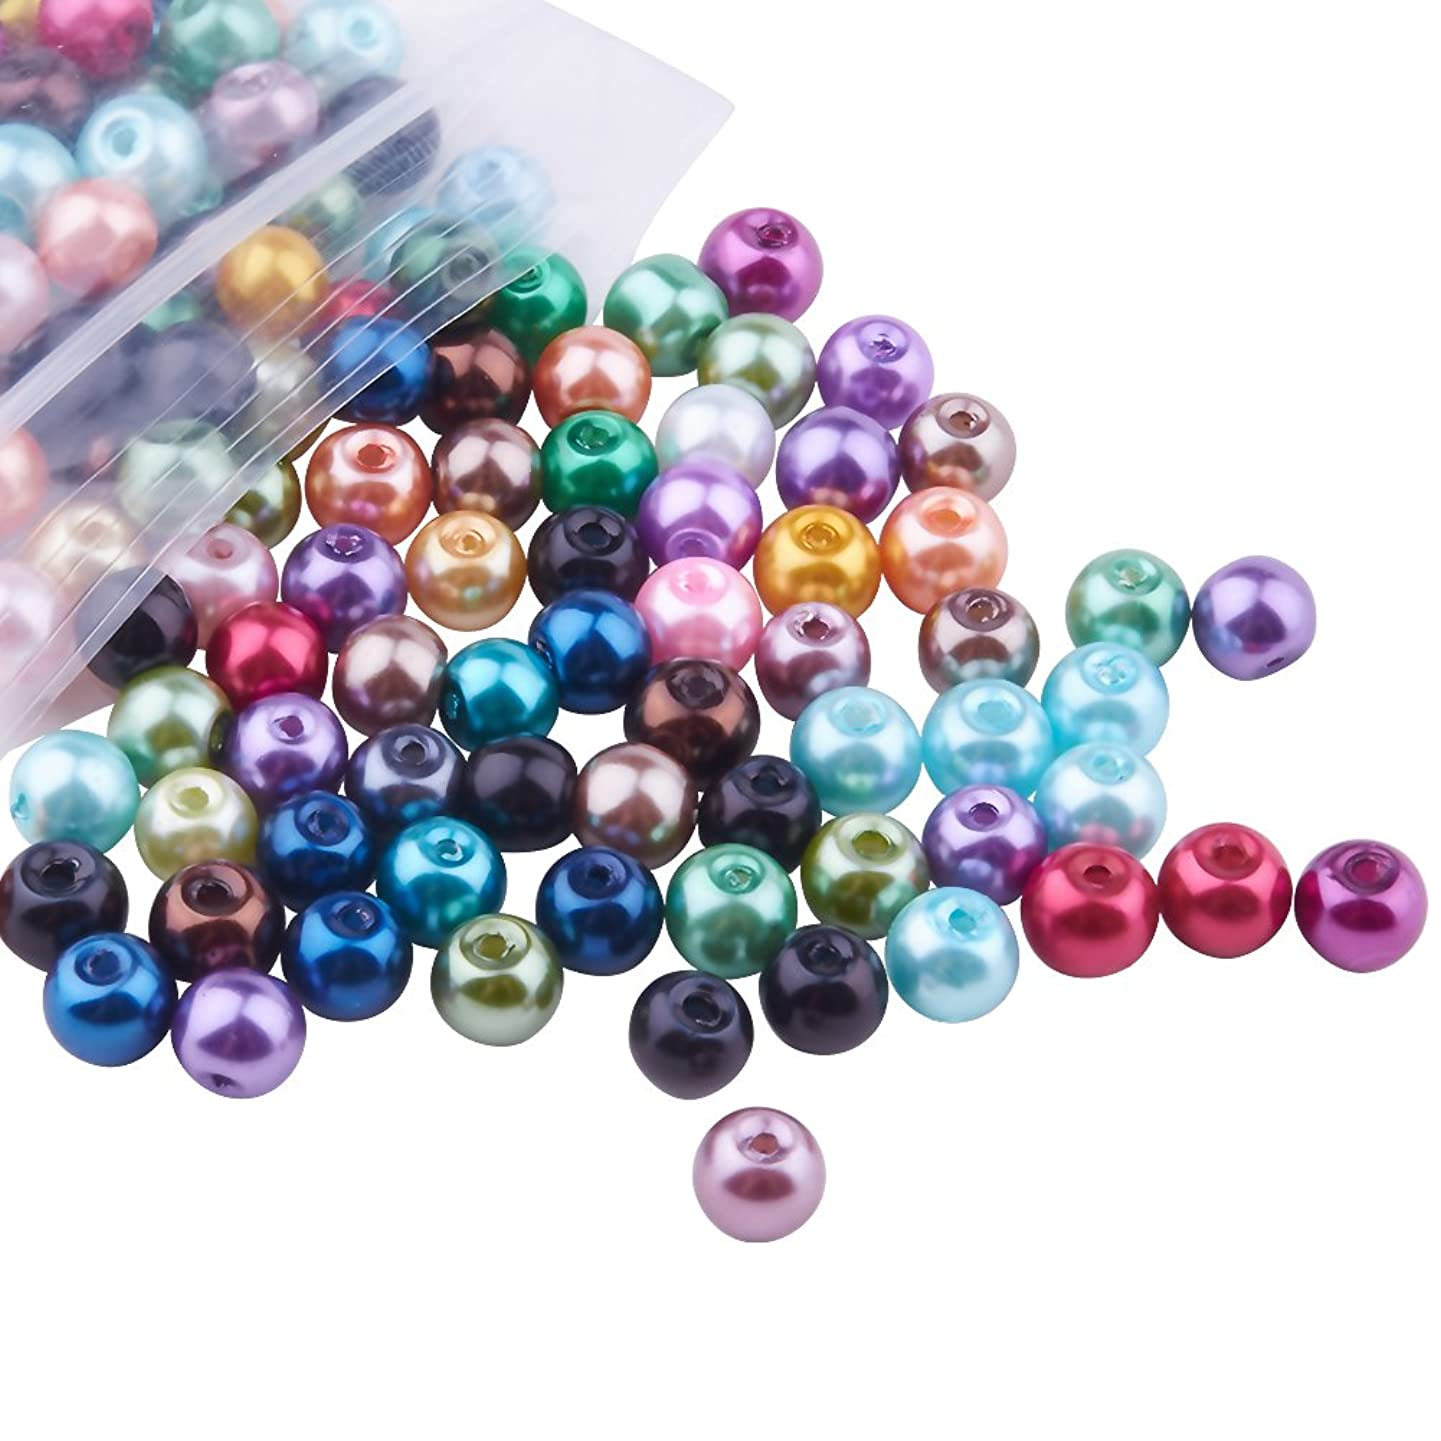 Pandahall 200pcs 6mm Mixed Color Round Glass Pearl Beads Strands Dyed Beads for Jewelry Necklace Craft Making, Hole: 0.5mm